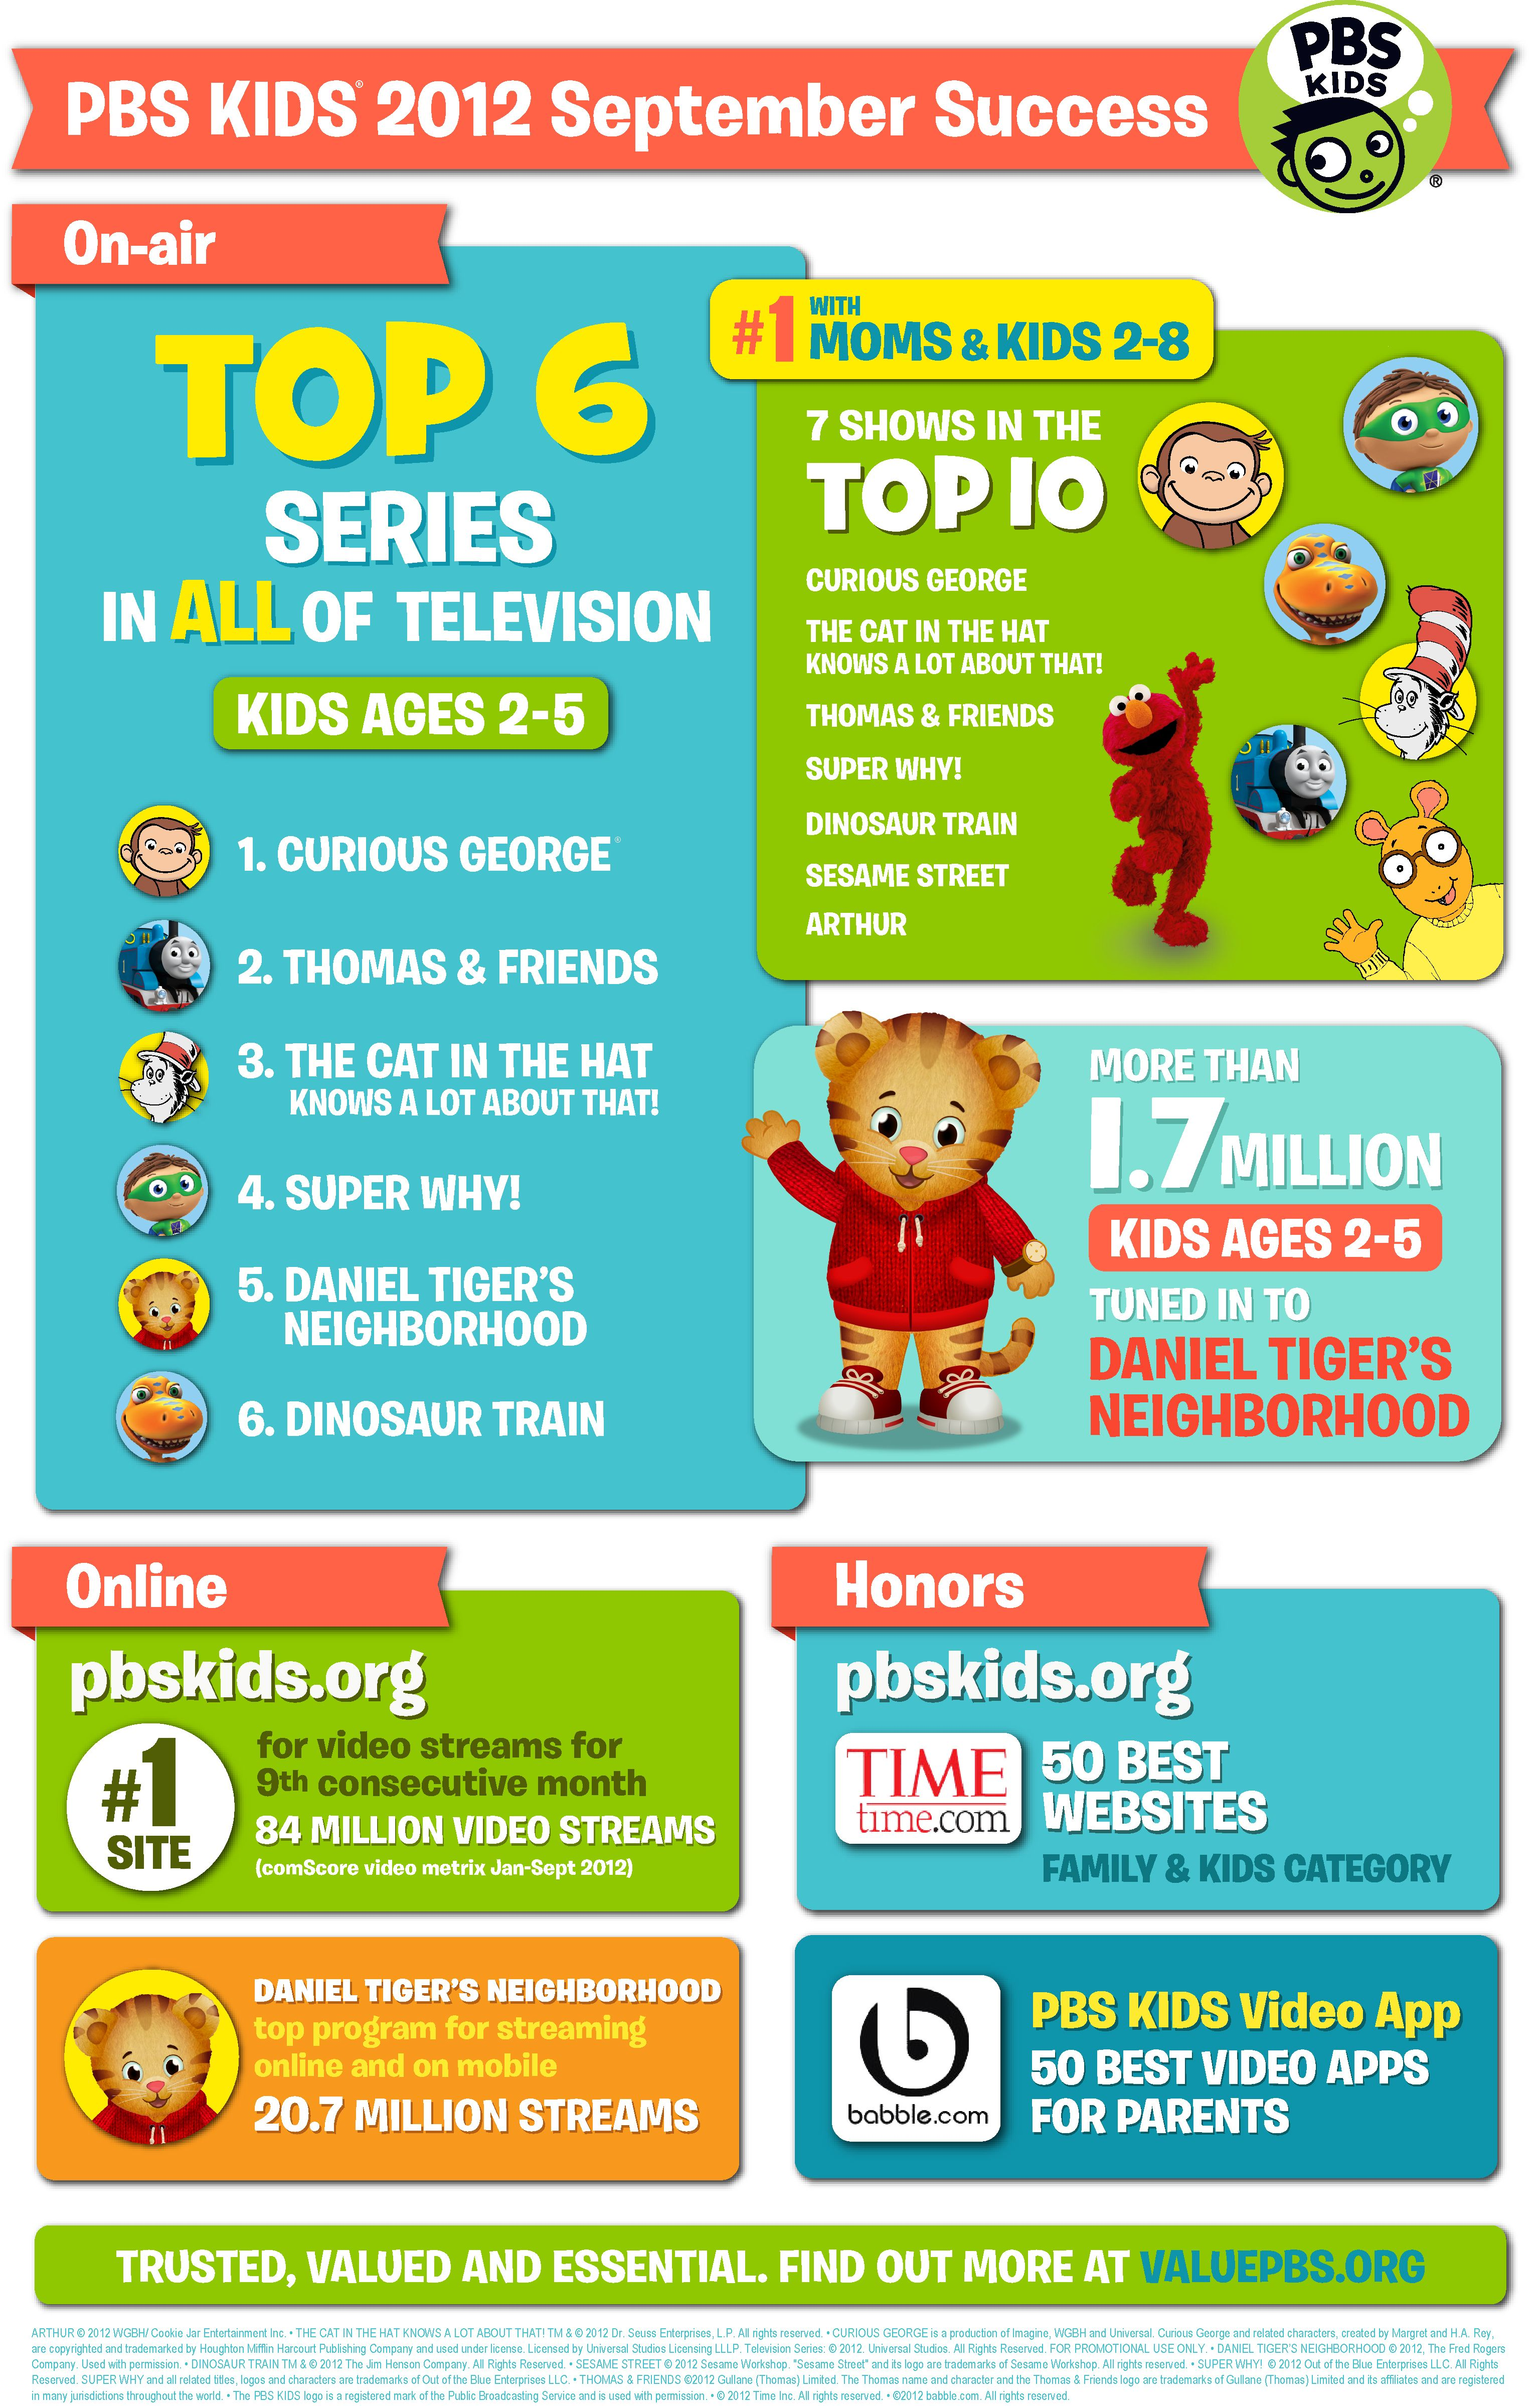 Repin From Pbs Kids Pbs Kids Had An Amazing September Check Out The Many Other Reasons Why Pbs Kids Rocks Http Valuepbs Pbs Kids Kids Website Helping Kids